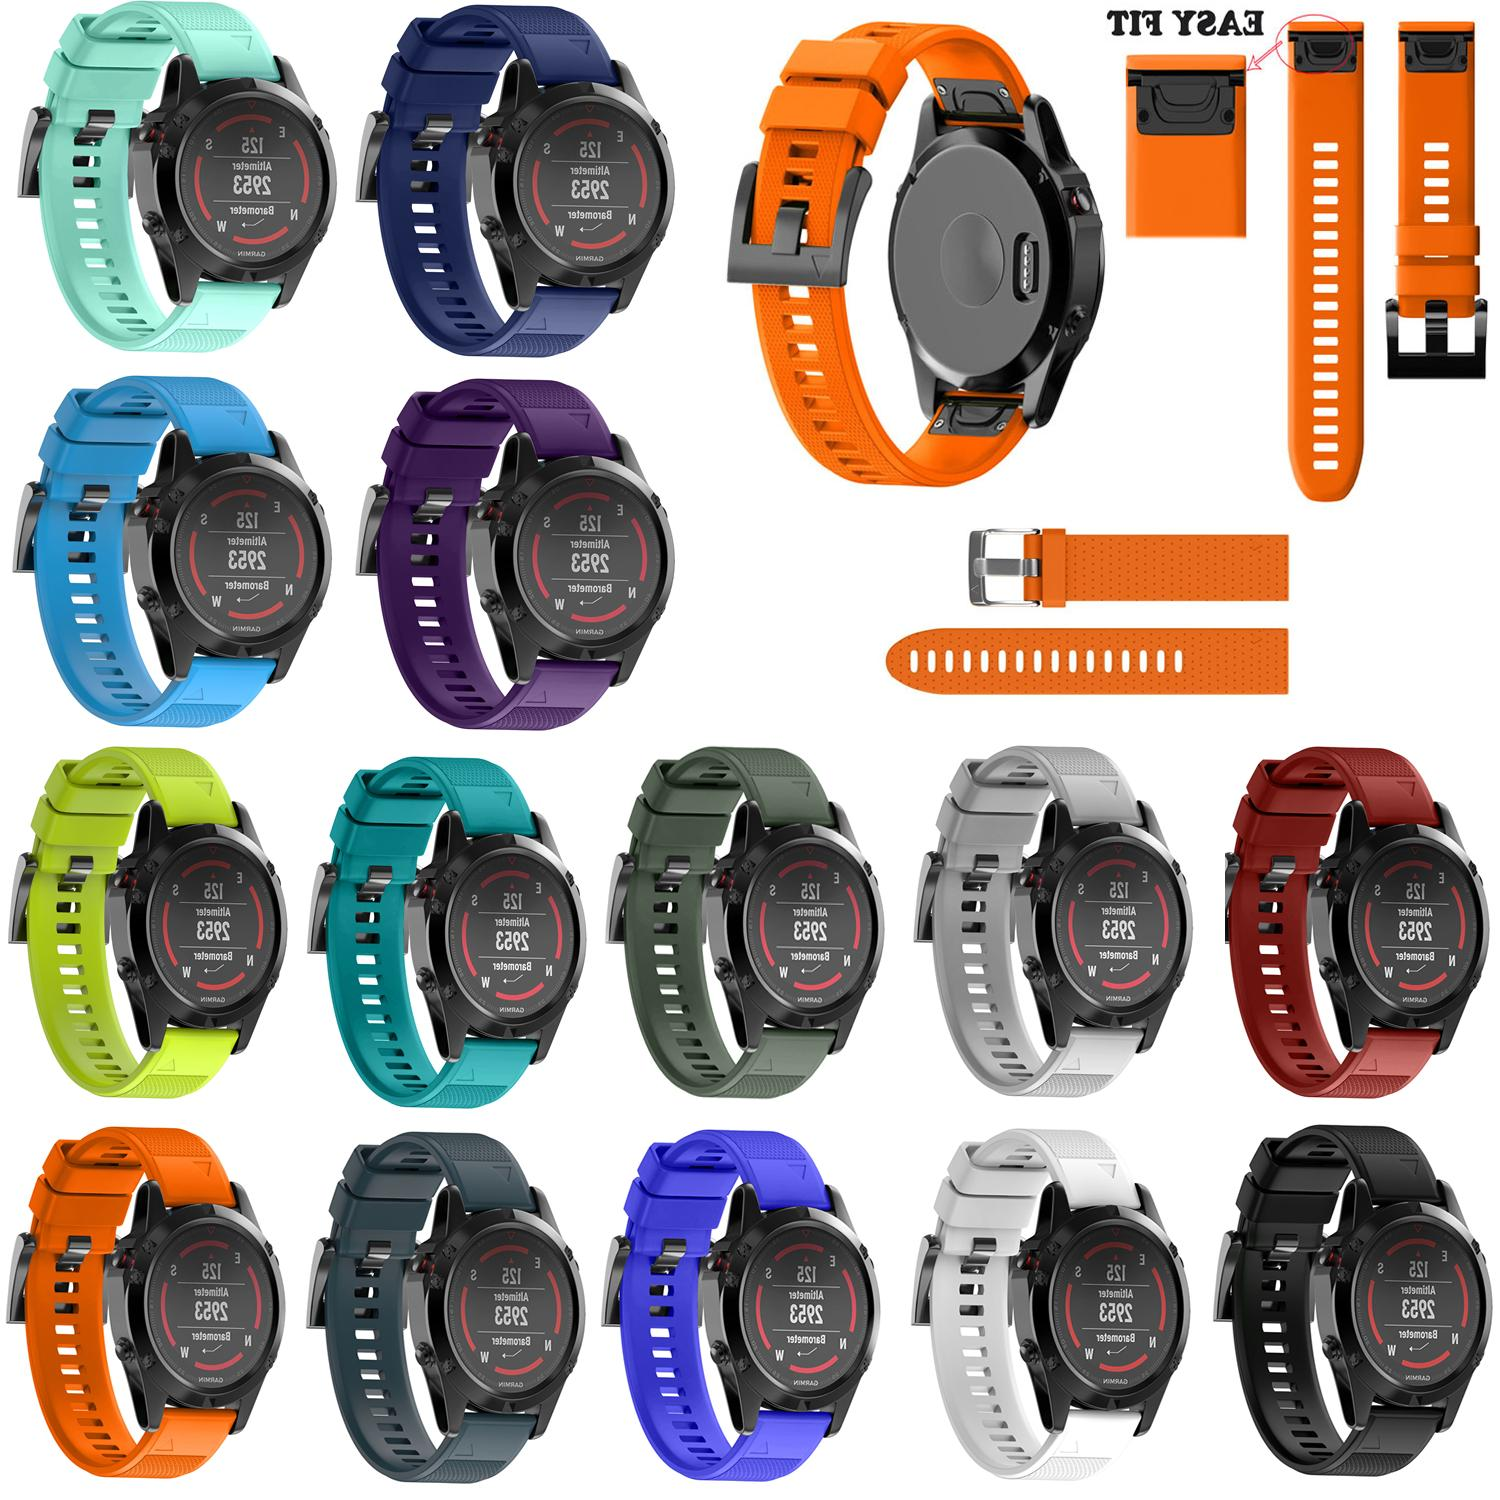 Wrist Watch Men 5/5X/5S Quick Replacement Band Soft Strap Fe